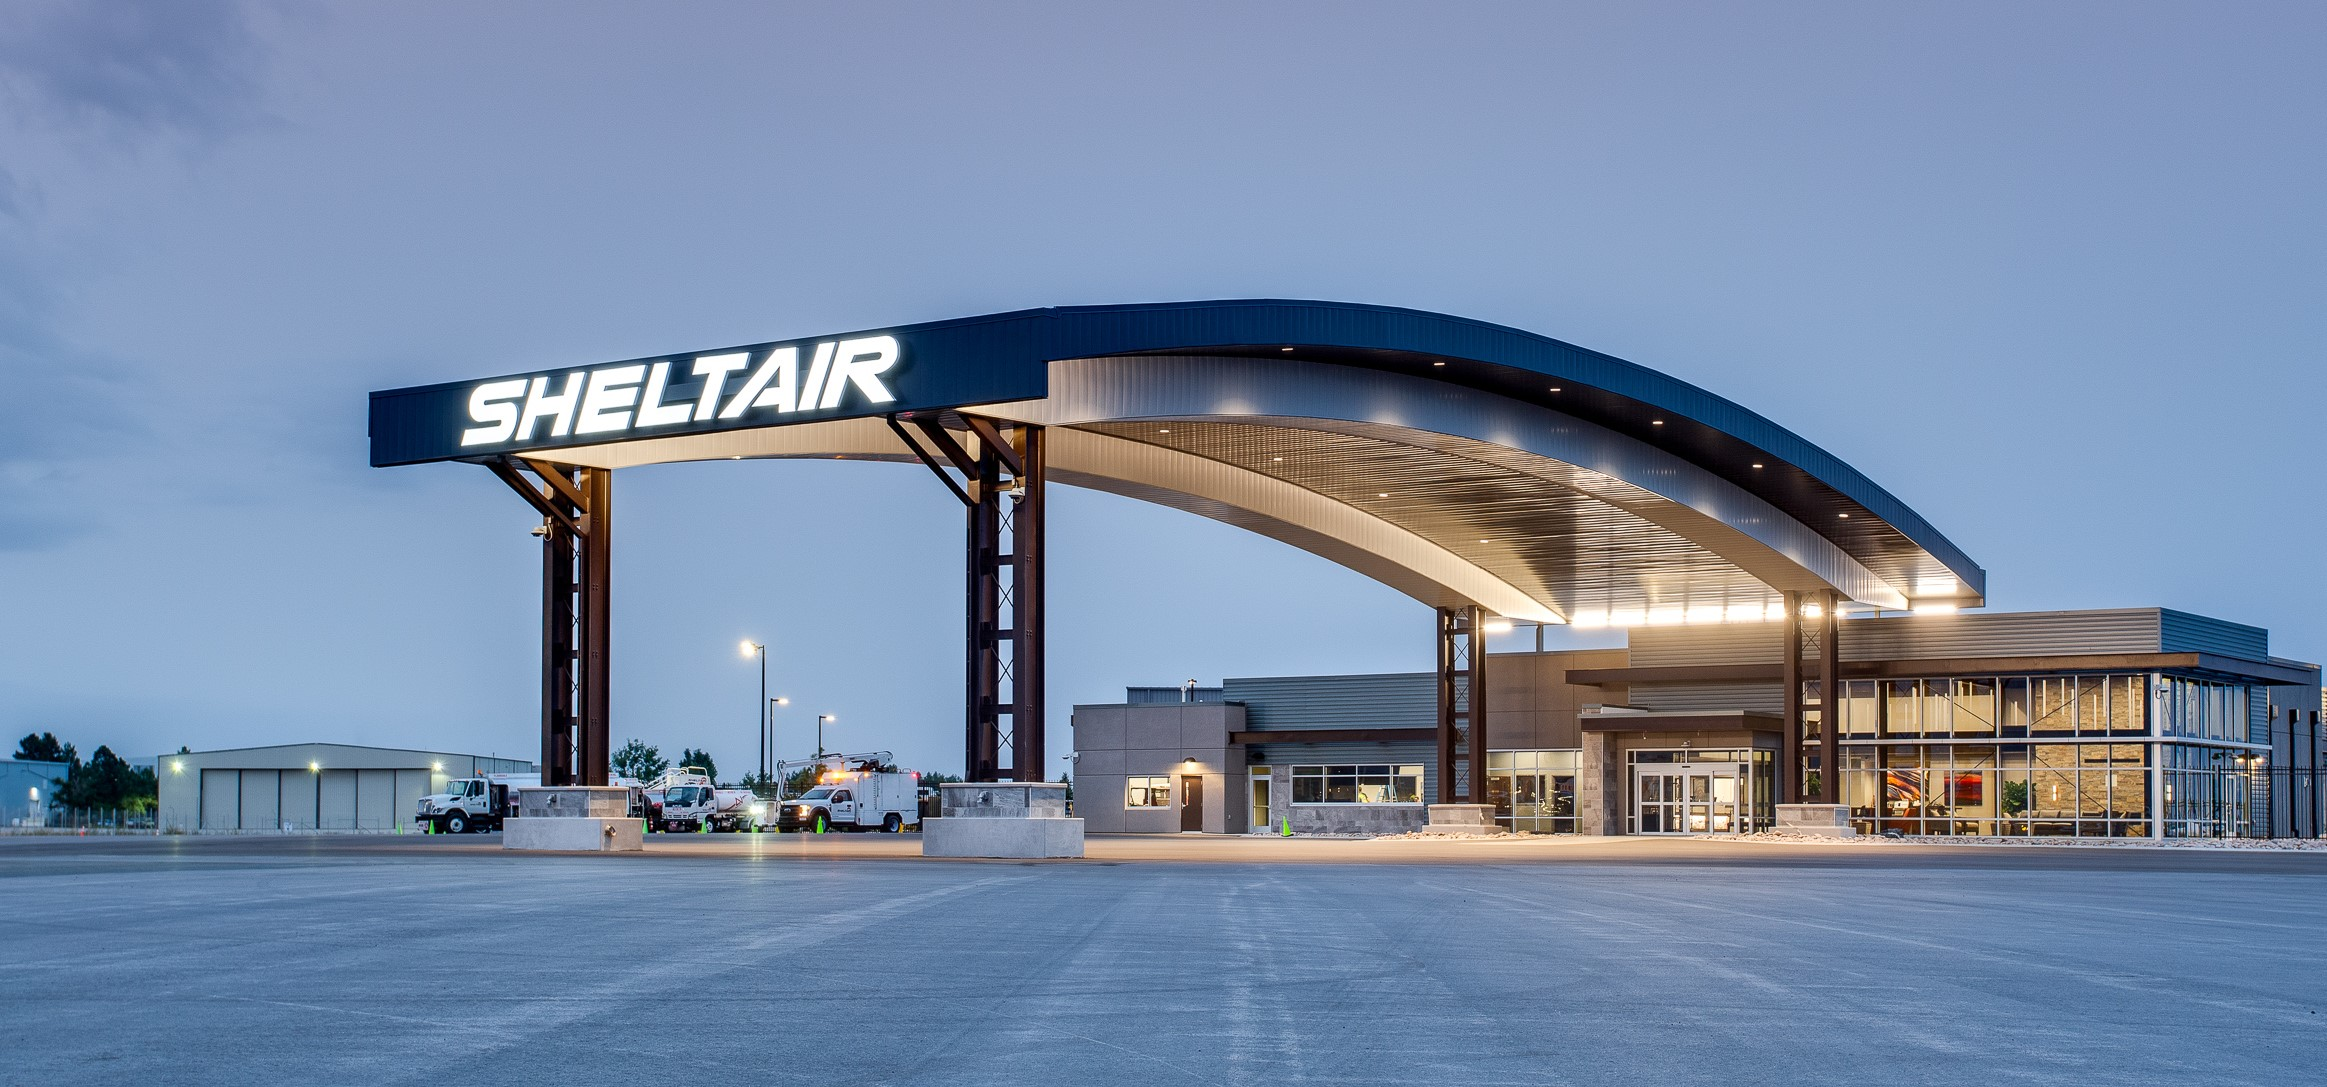 Sheltair Unveils New Denver FBO Terminal and Hangar Complex